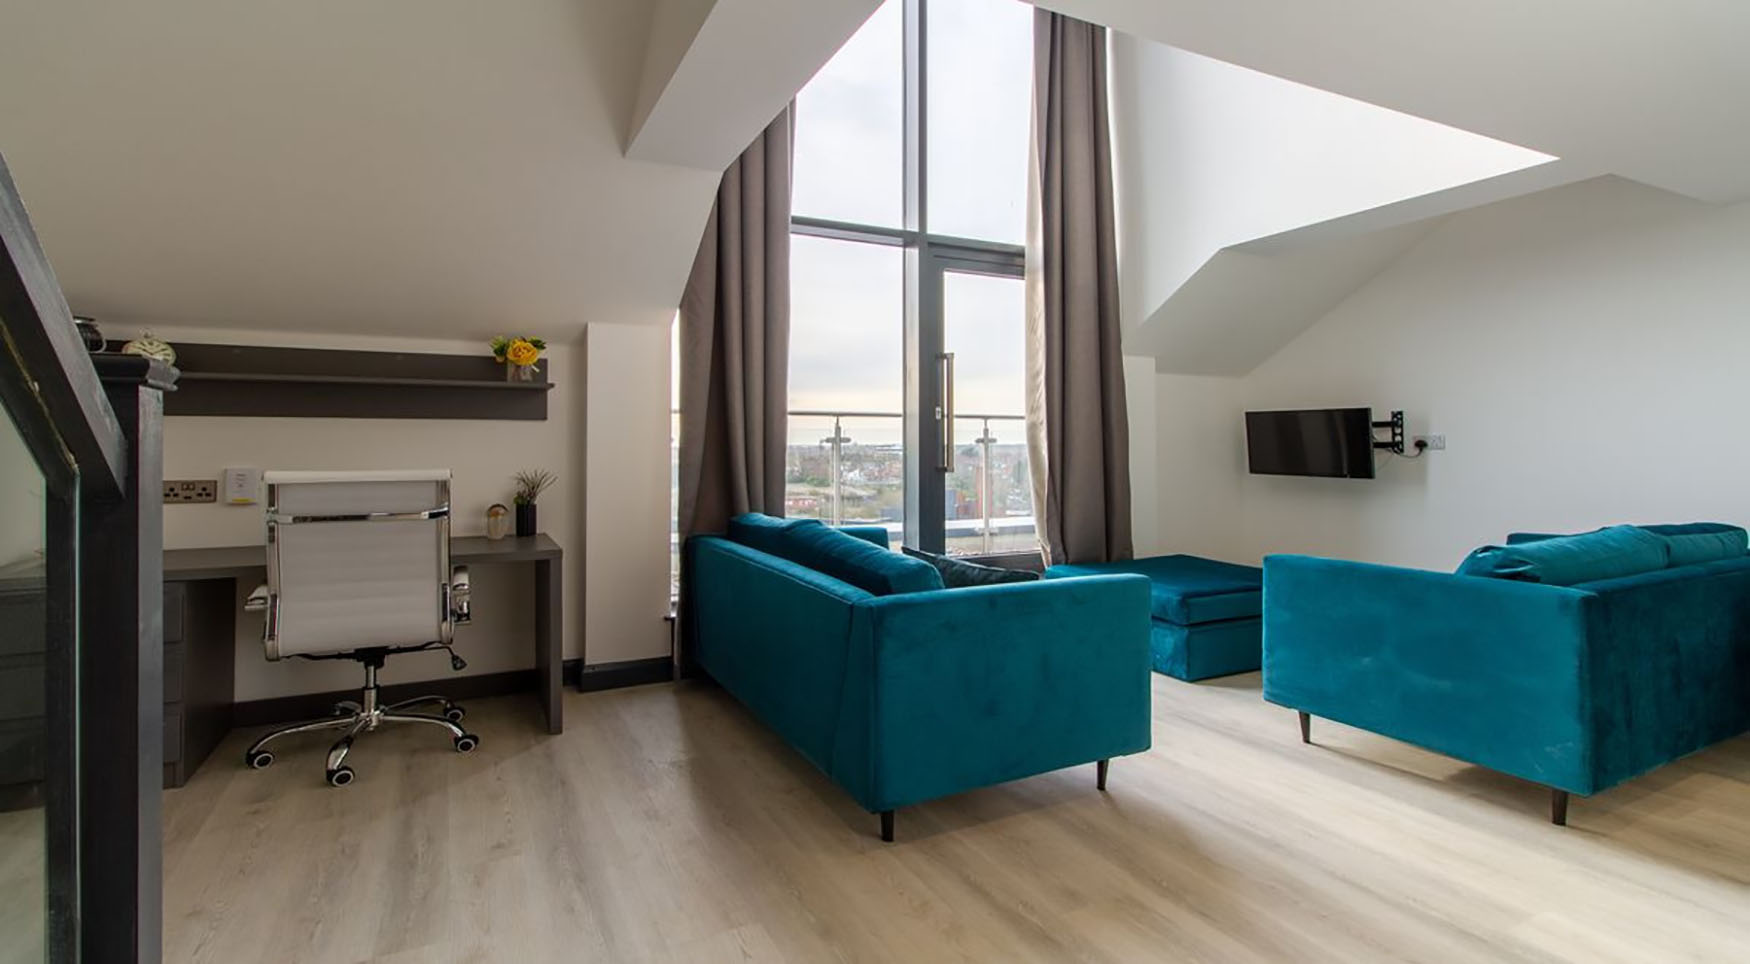 Sofas at The Residence Coventry, Centre, Newmarket - Citybase Apartments